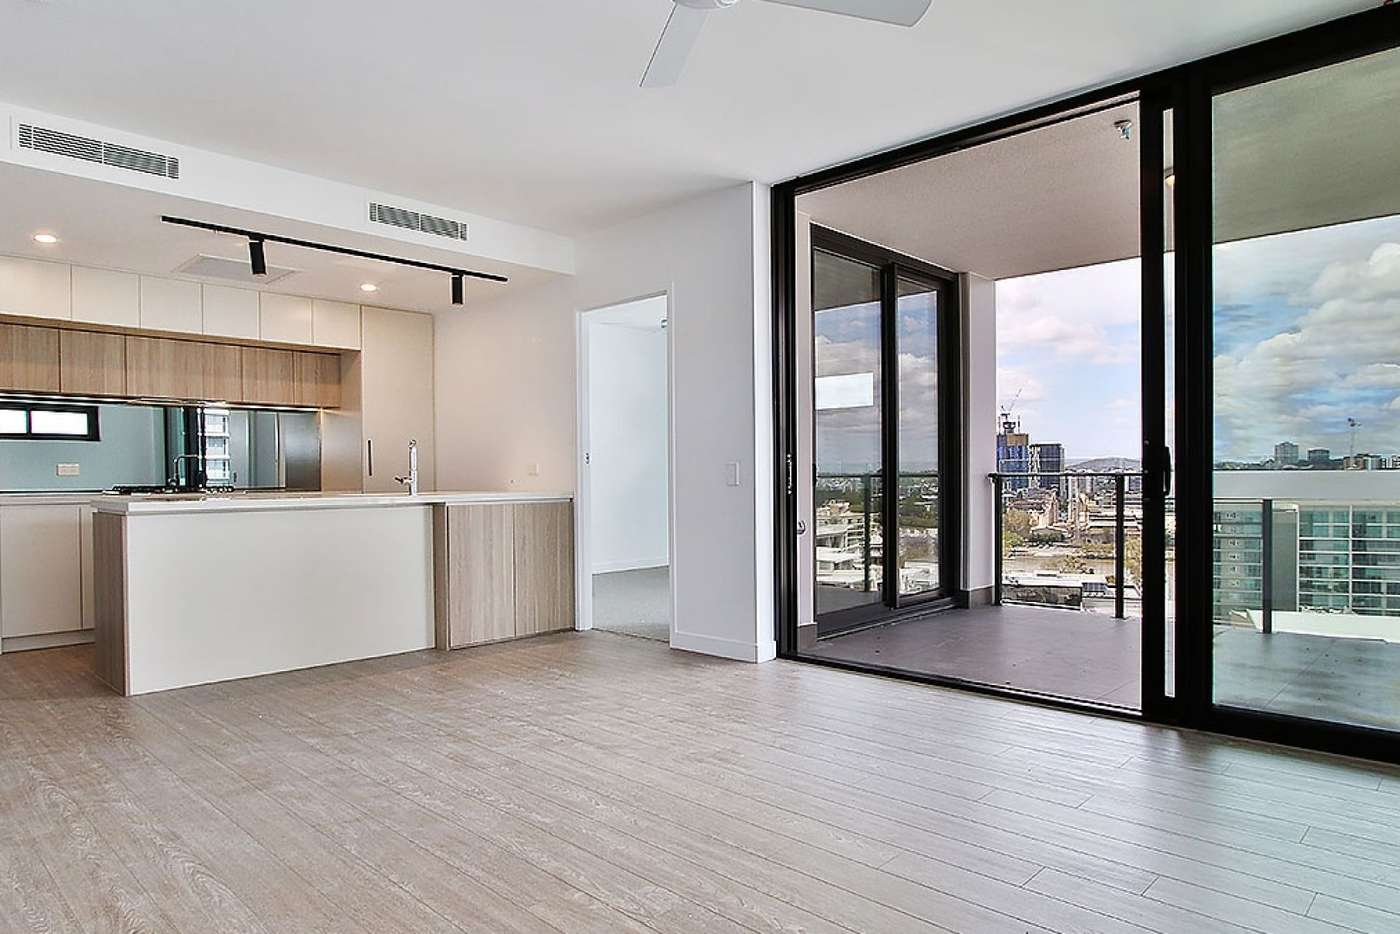 Main view of Homely apartment listing, ID:3917729/19 Railway Terrace, Milton QLD 4064